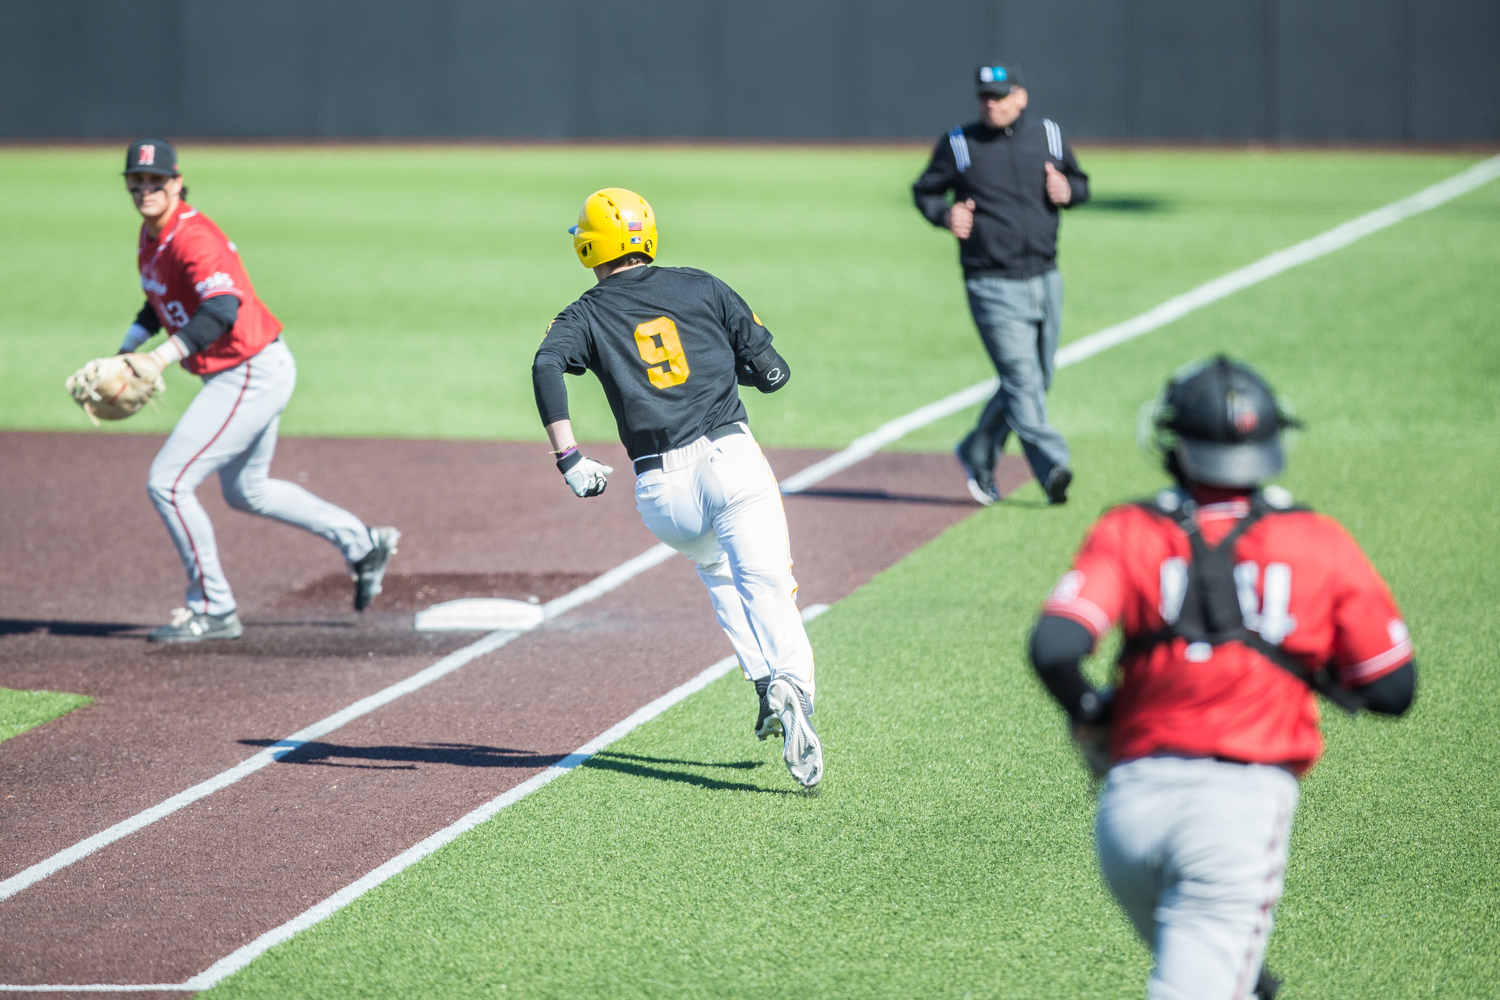 Iowa+outfielder+Ben+Norman+rounds+first+base+during+the+first+game+of+a+baseball+doubleheader+between+Iowa+and+Cal-State+Northridge+at+Duane+Banks+Field+on+Sunday%2C+March+17%2C+2019.+The+Hawkeyes+defeated+the+Matadors%2C+5-4.